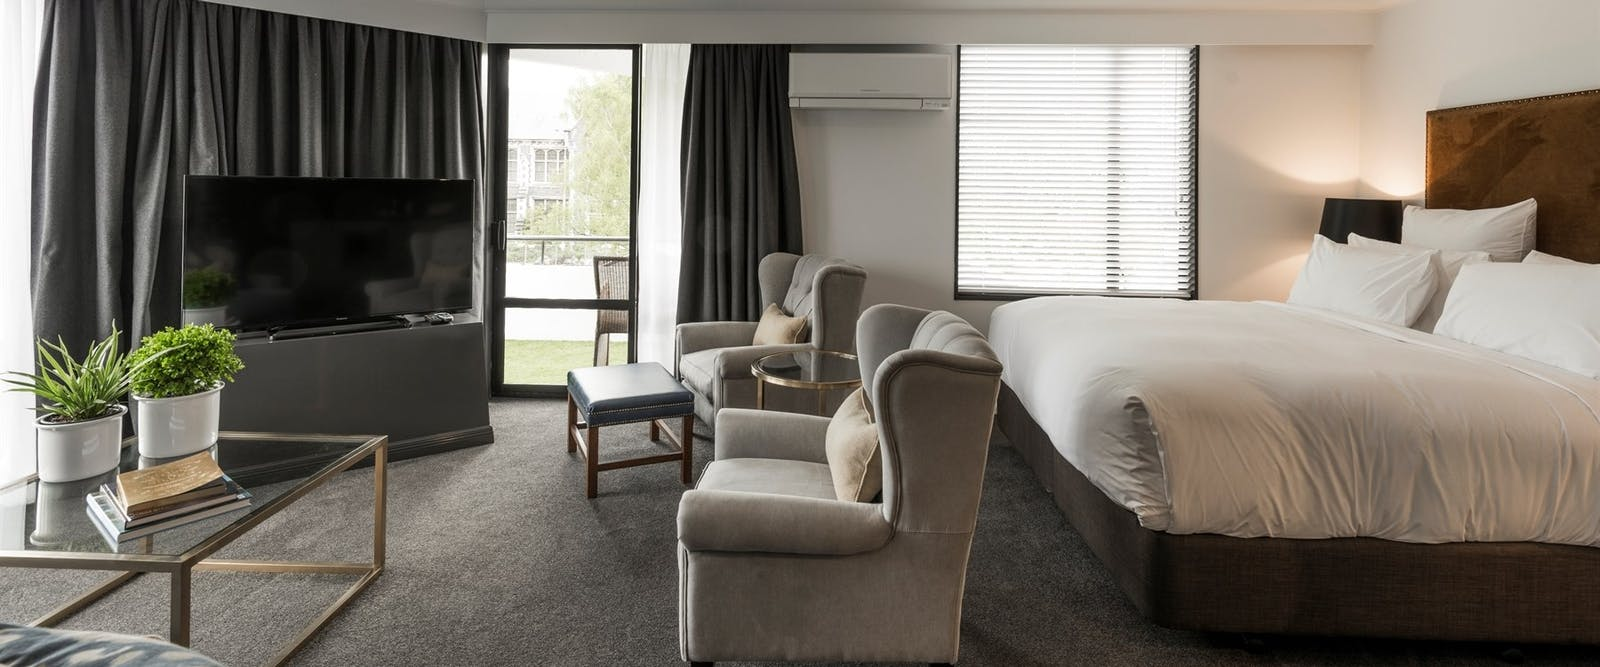 Family Suite Lounge and Bed at Hotel Montreal, Christchurch